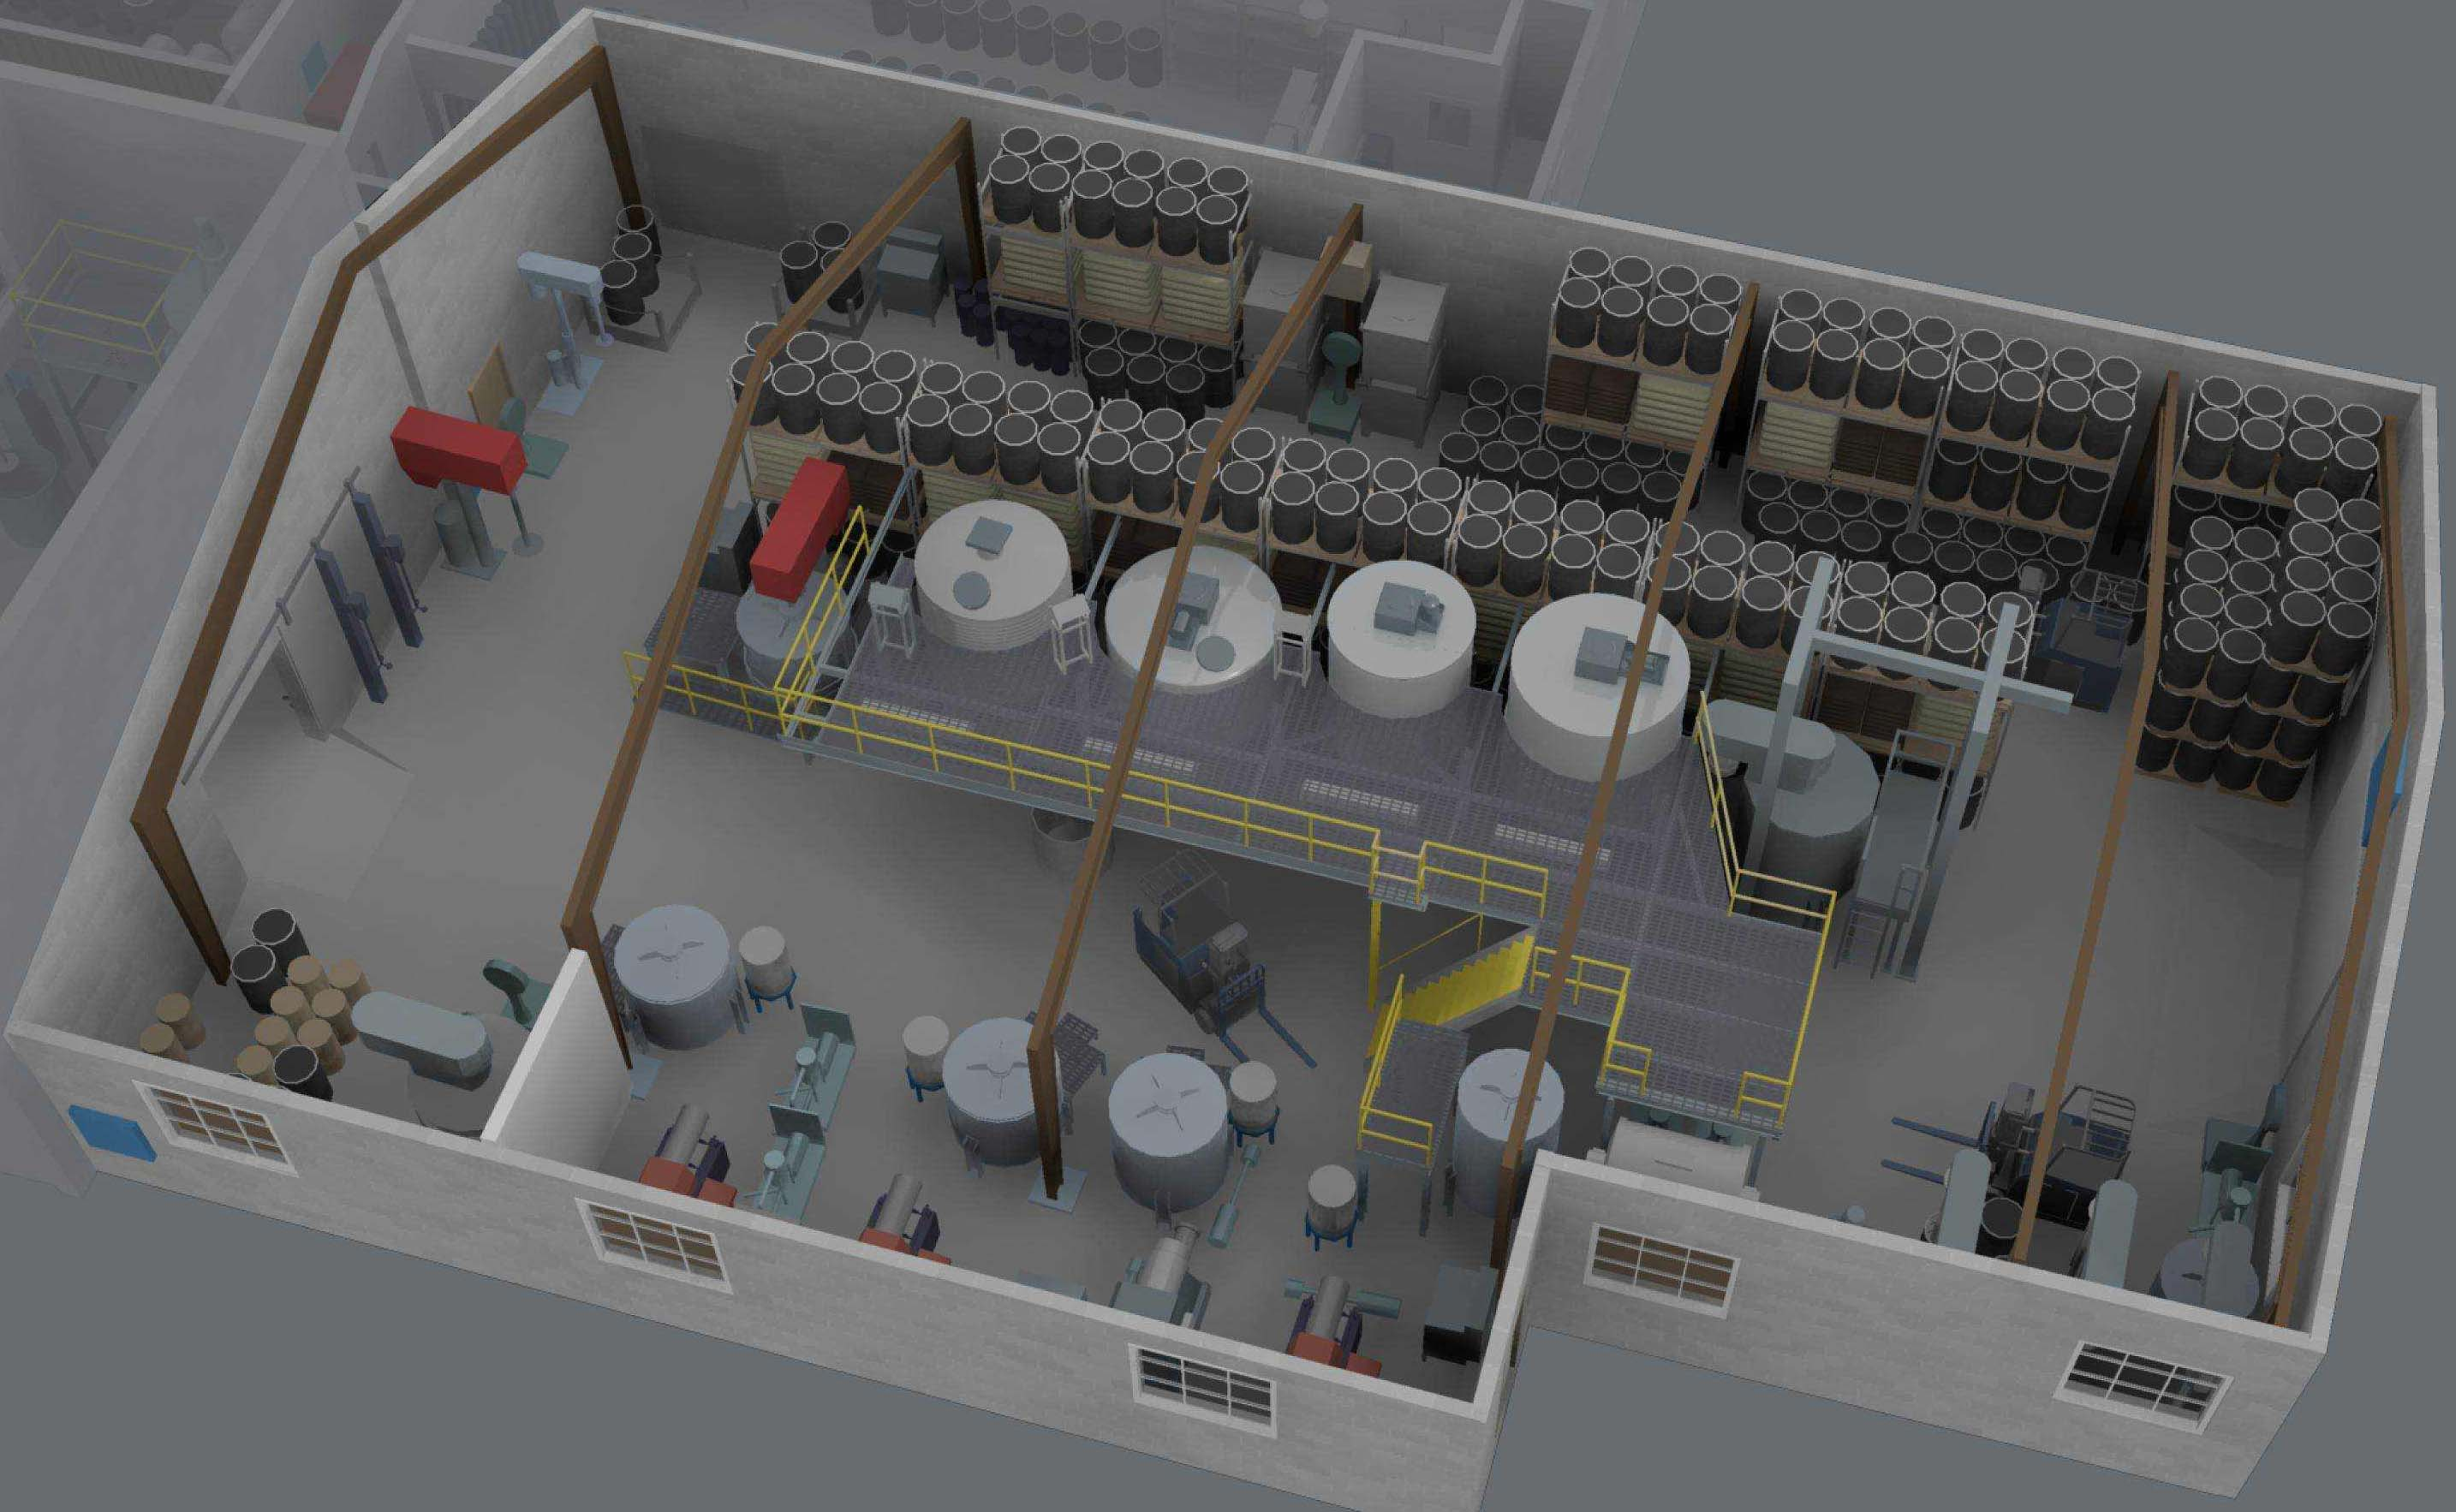 3D model of the facility prior to the explosion